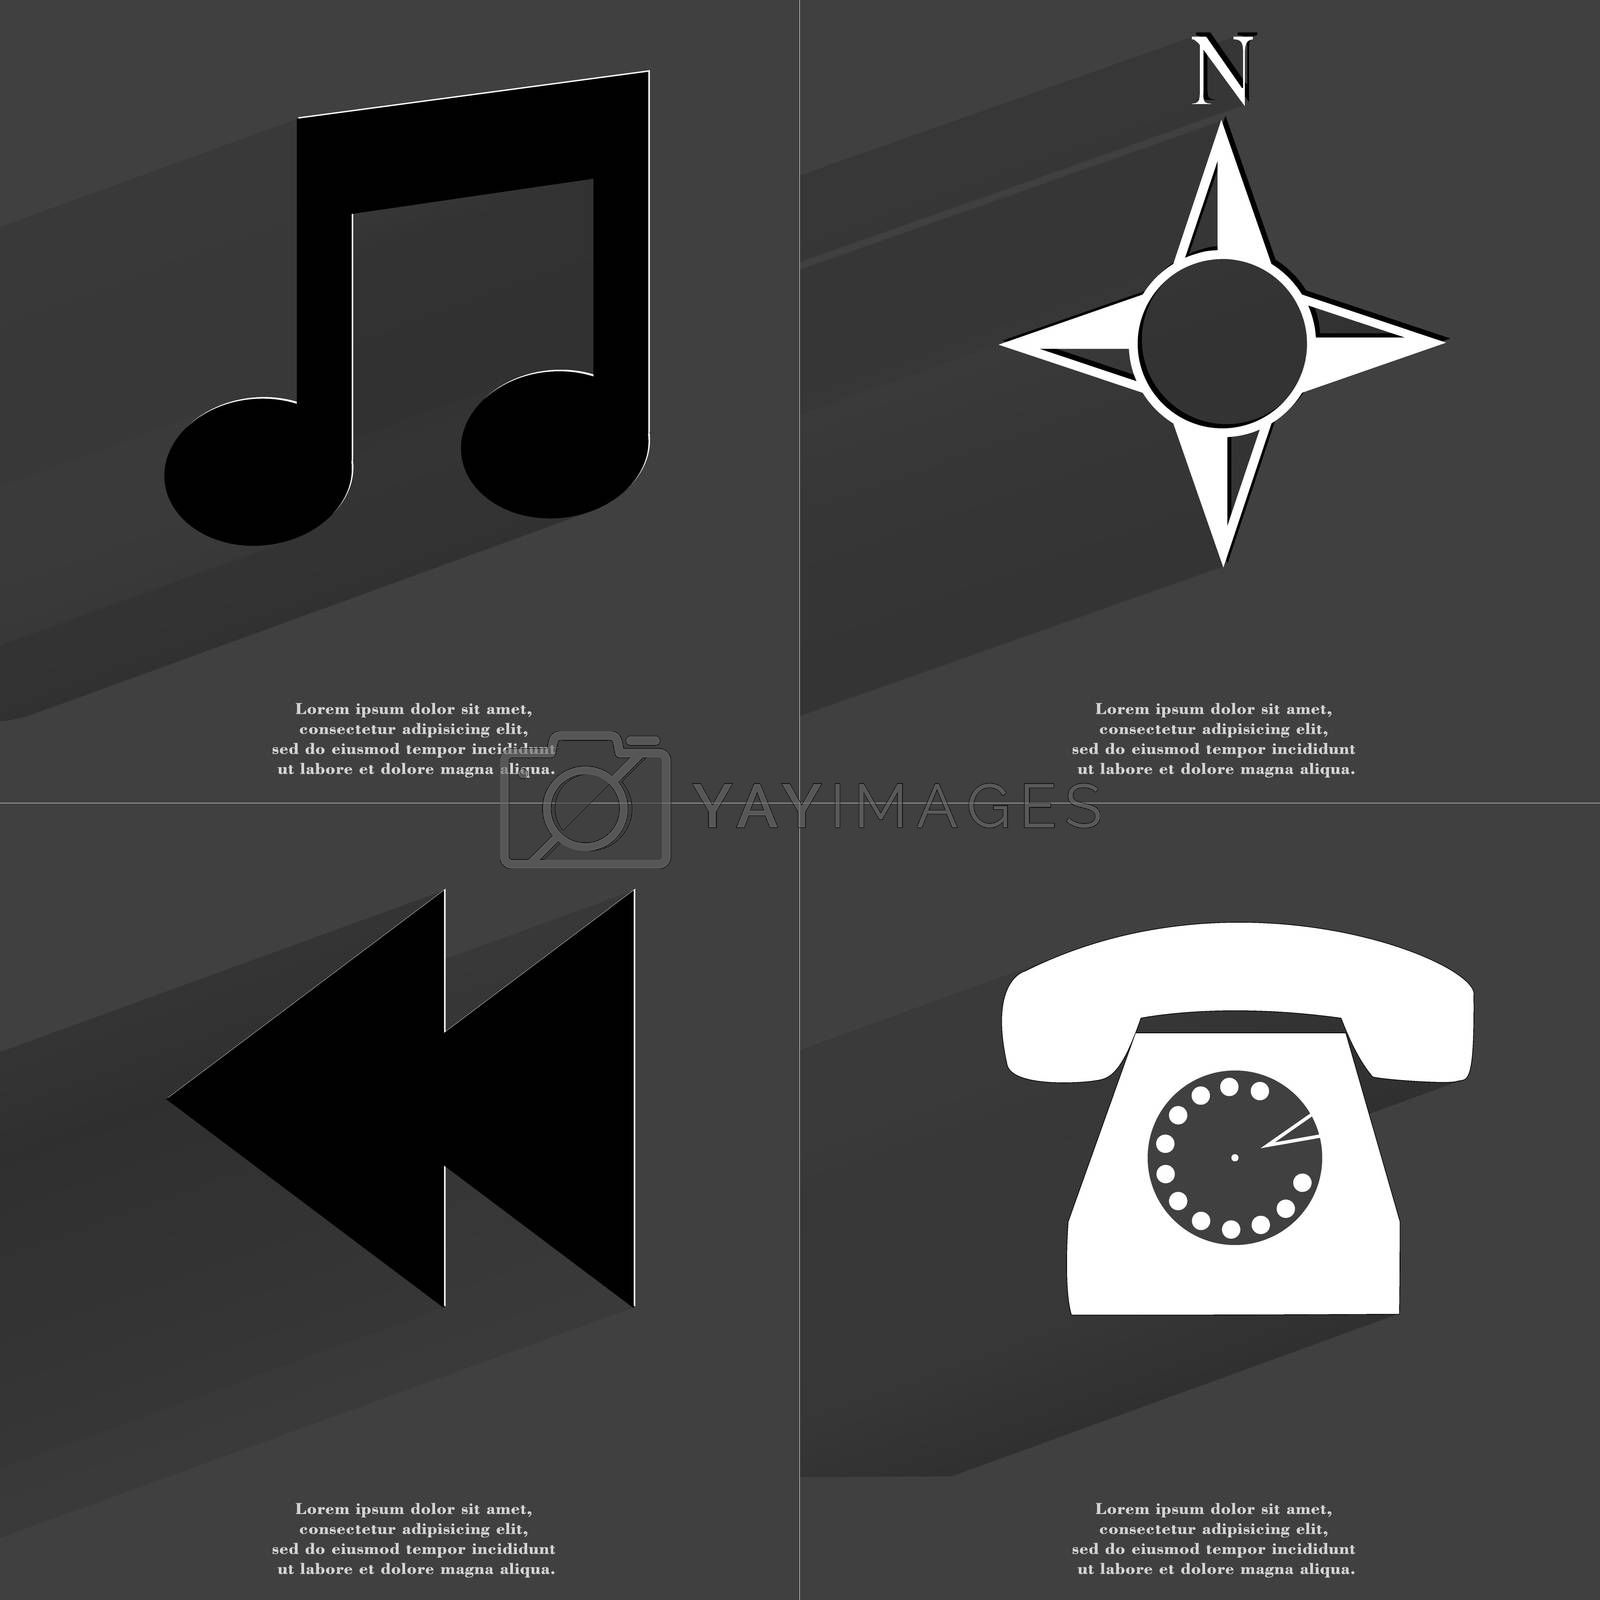 Royalty free image of Note sign, Compass, Two arrows media icon, Retro phone. Symbols with long shadow. Flat design by serhii_lohvyniuk